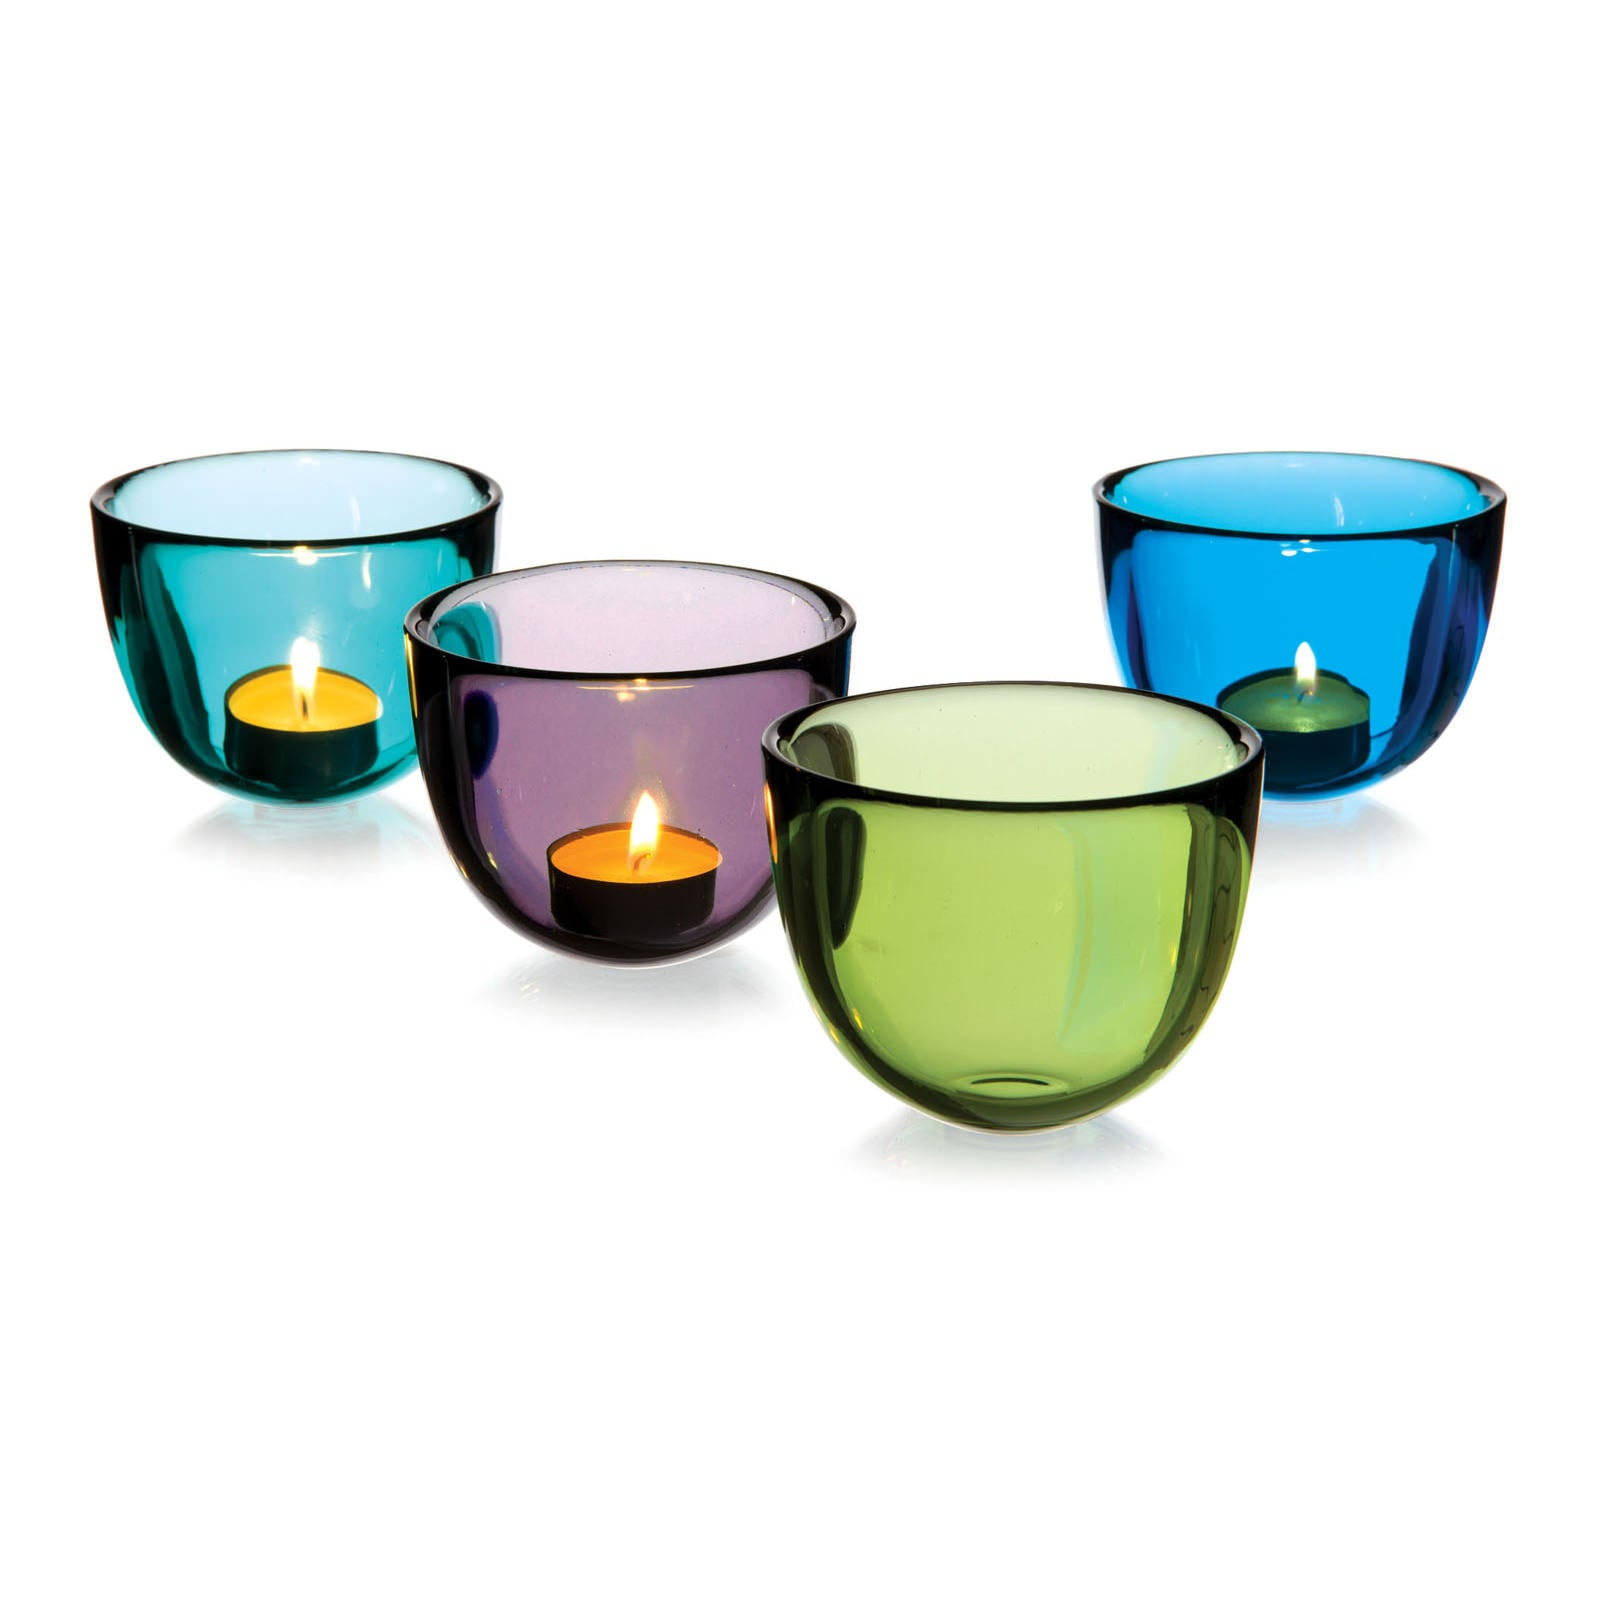 DAVID MELLOR | Glass Bowl/Candleholder | Smoke Grey | 7.5cm High | 10cm Dia